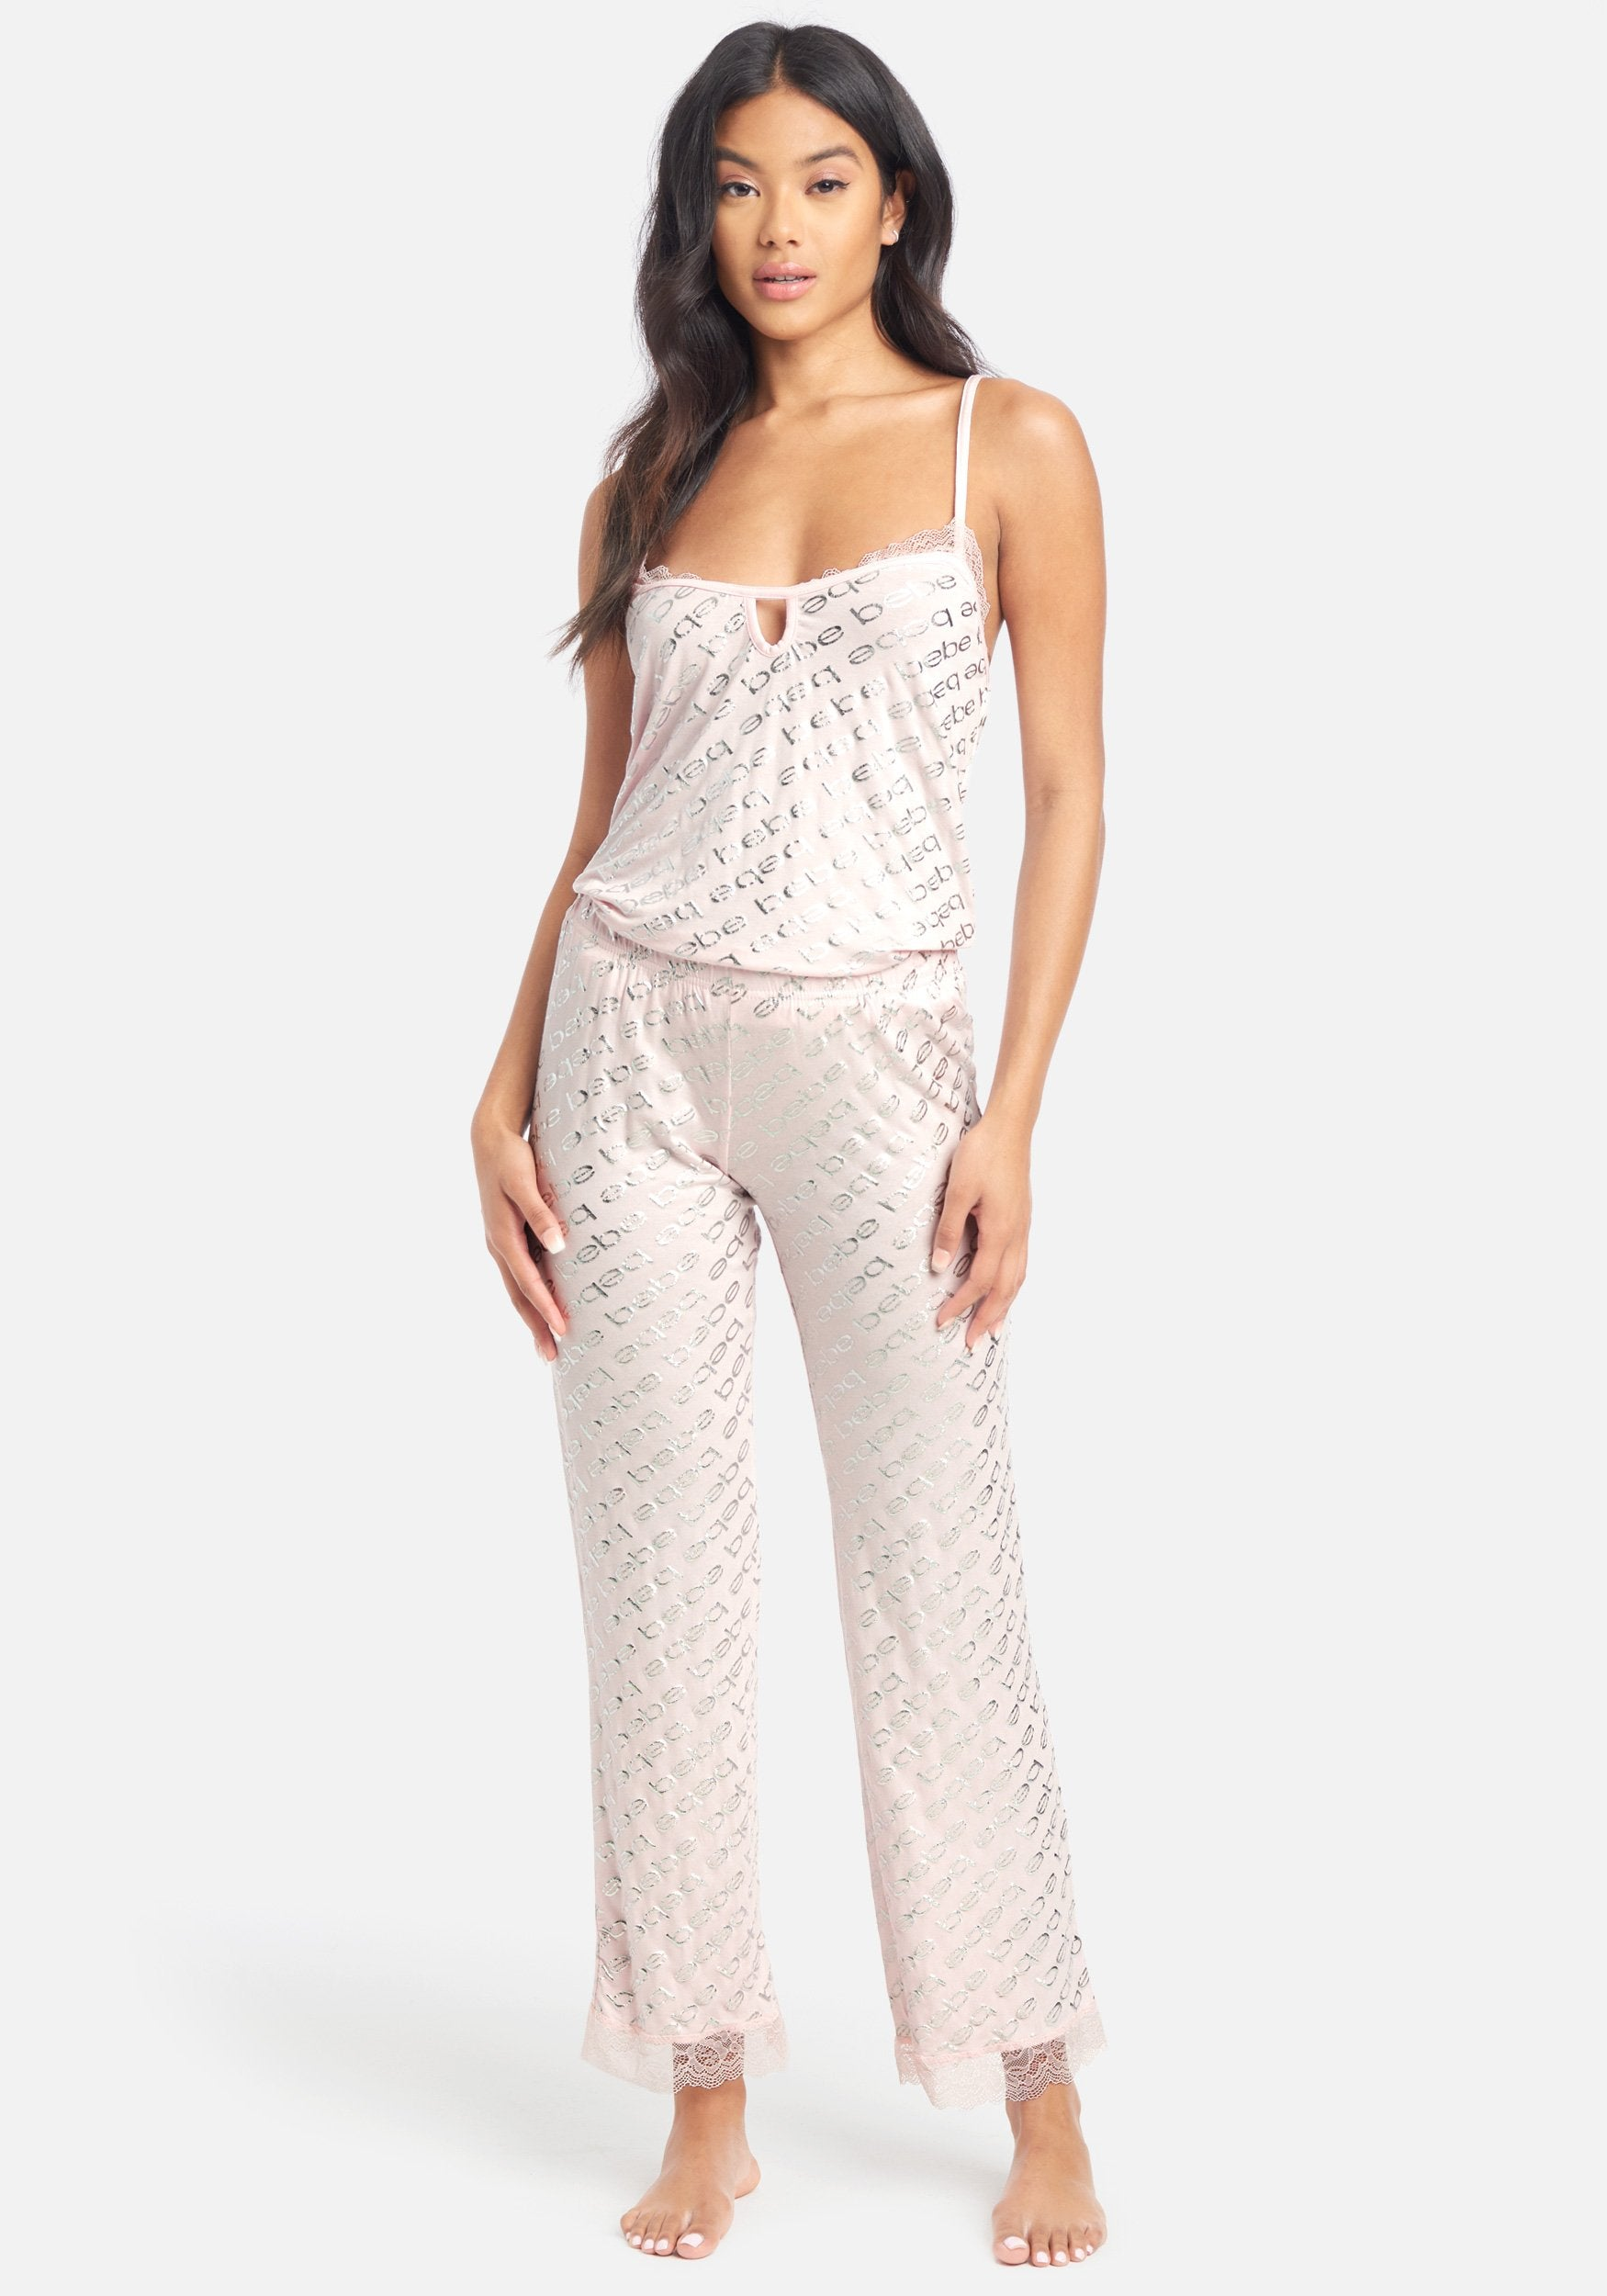 Women's Printed Bebe Foil Pant Set, Size Small in Light Pink Spandex